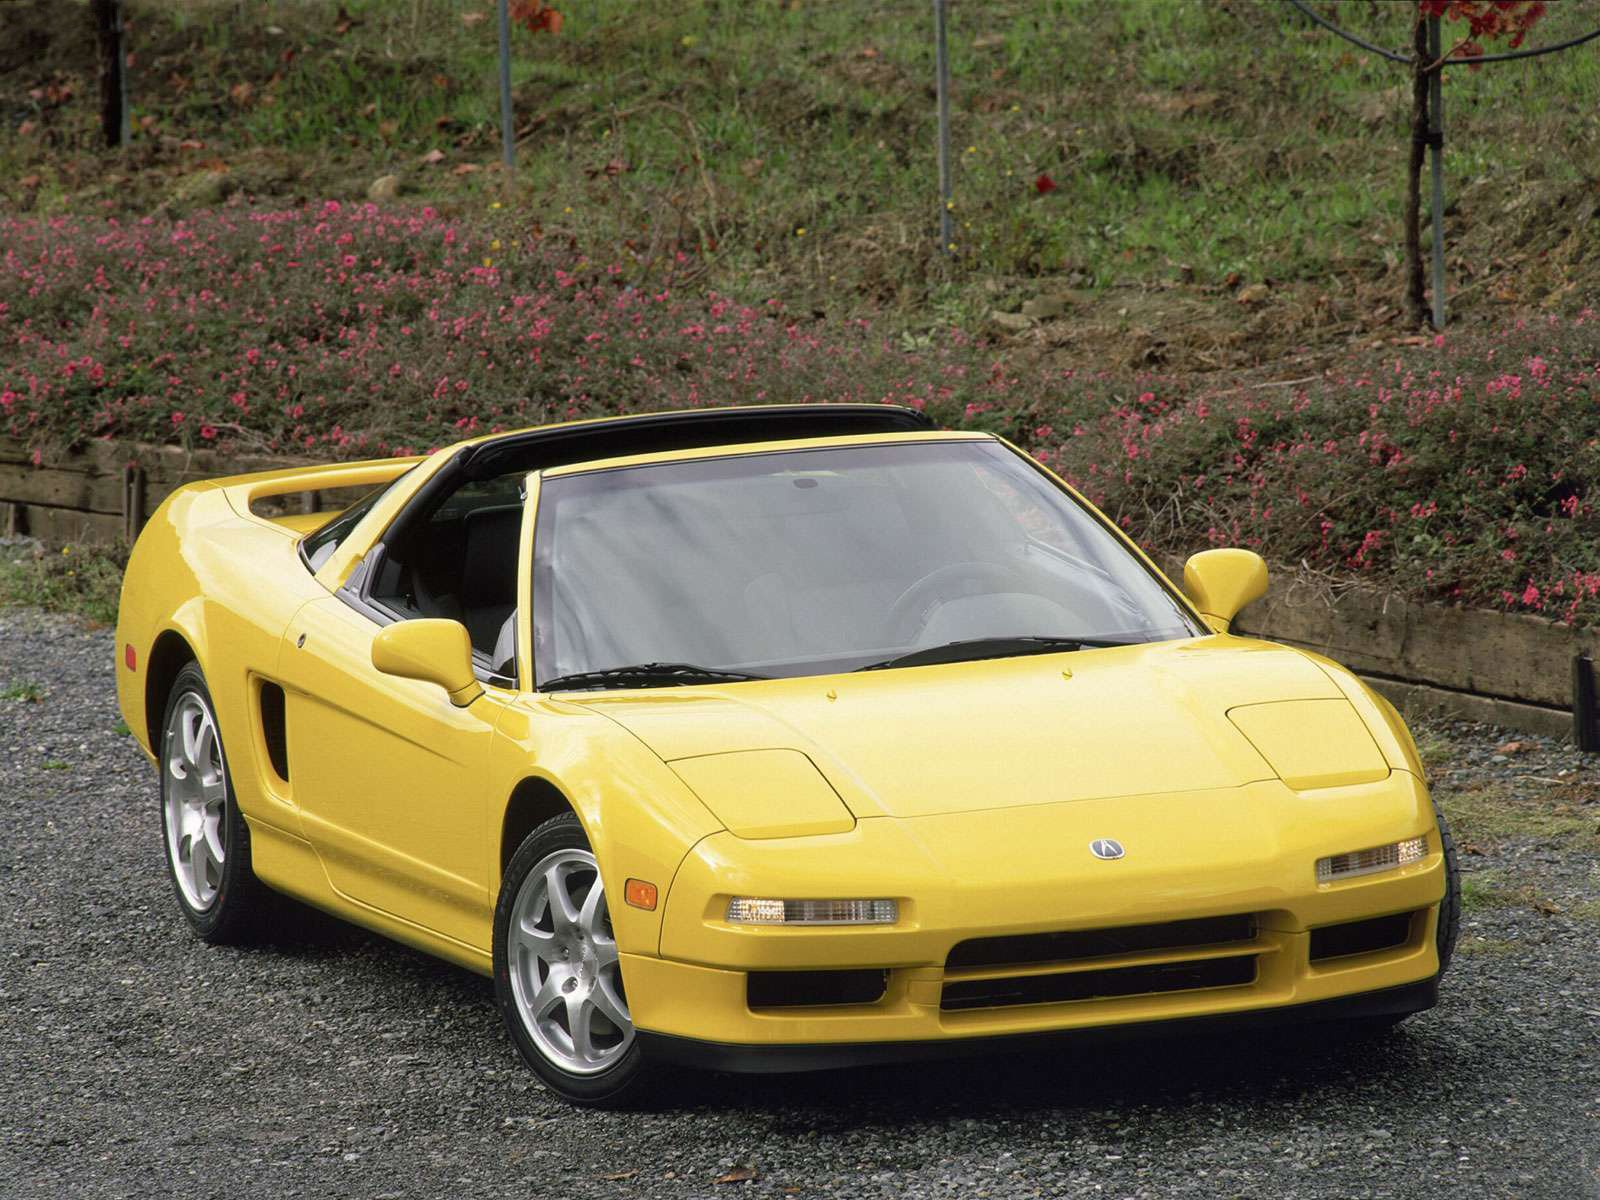 Latest 2001 Acura Nsx T Car Photos Pictures Wallpapers Free Download